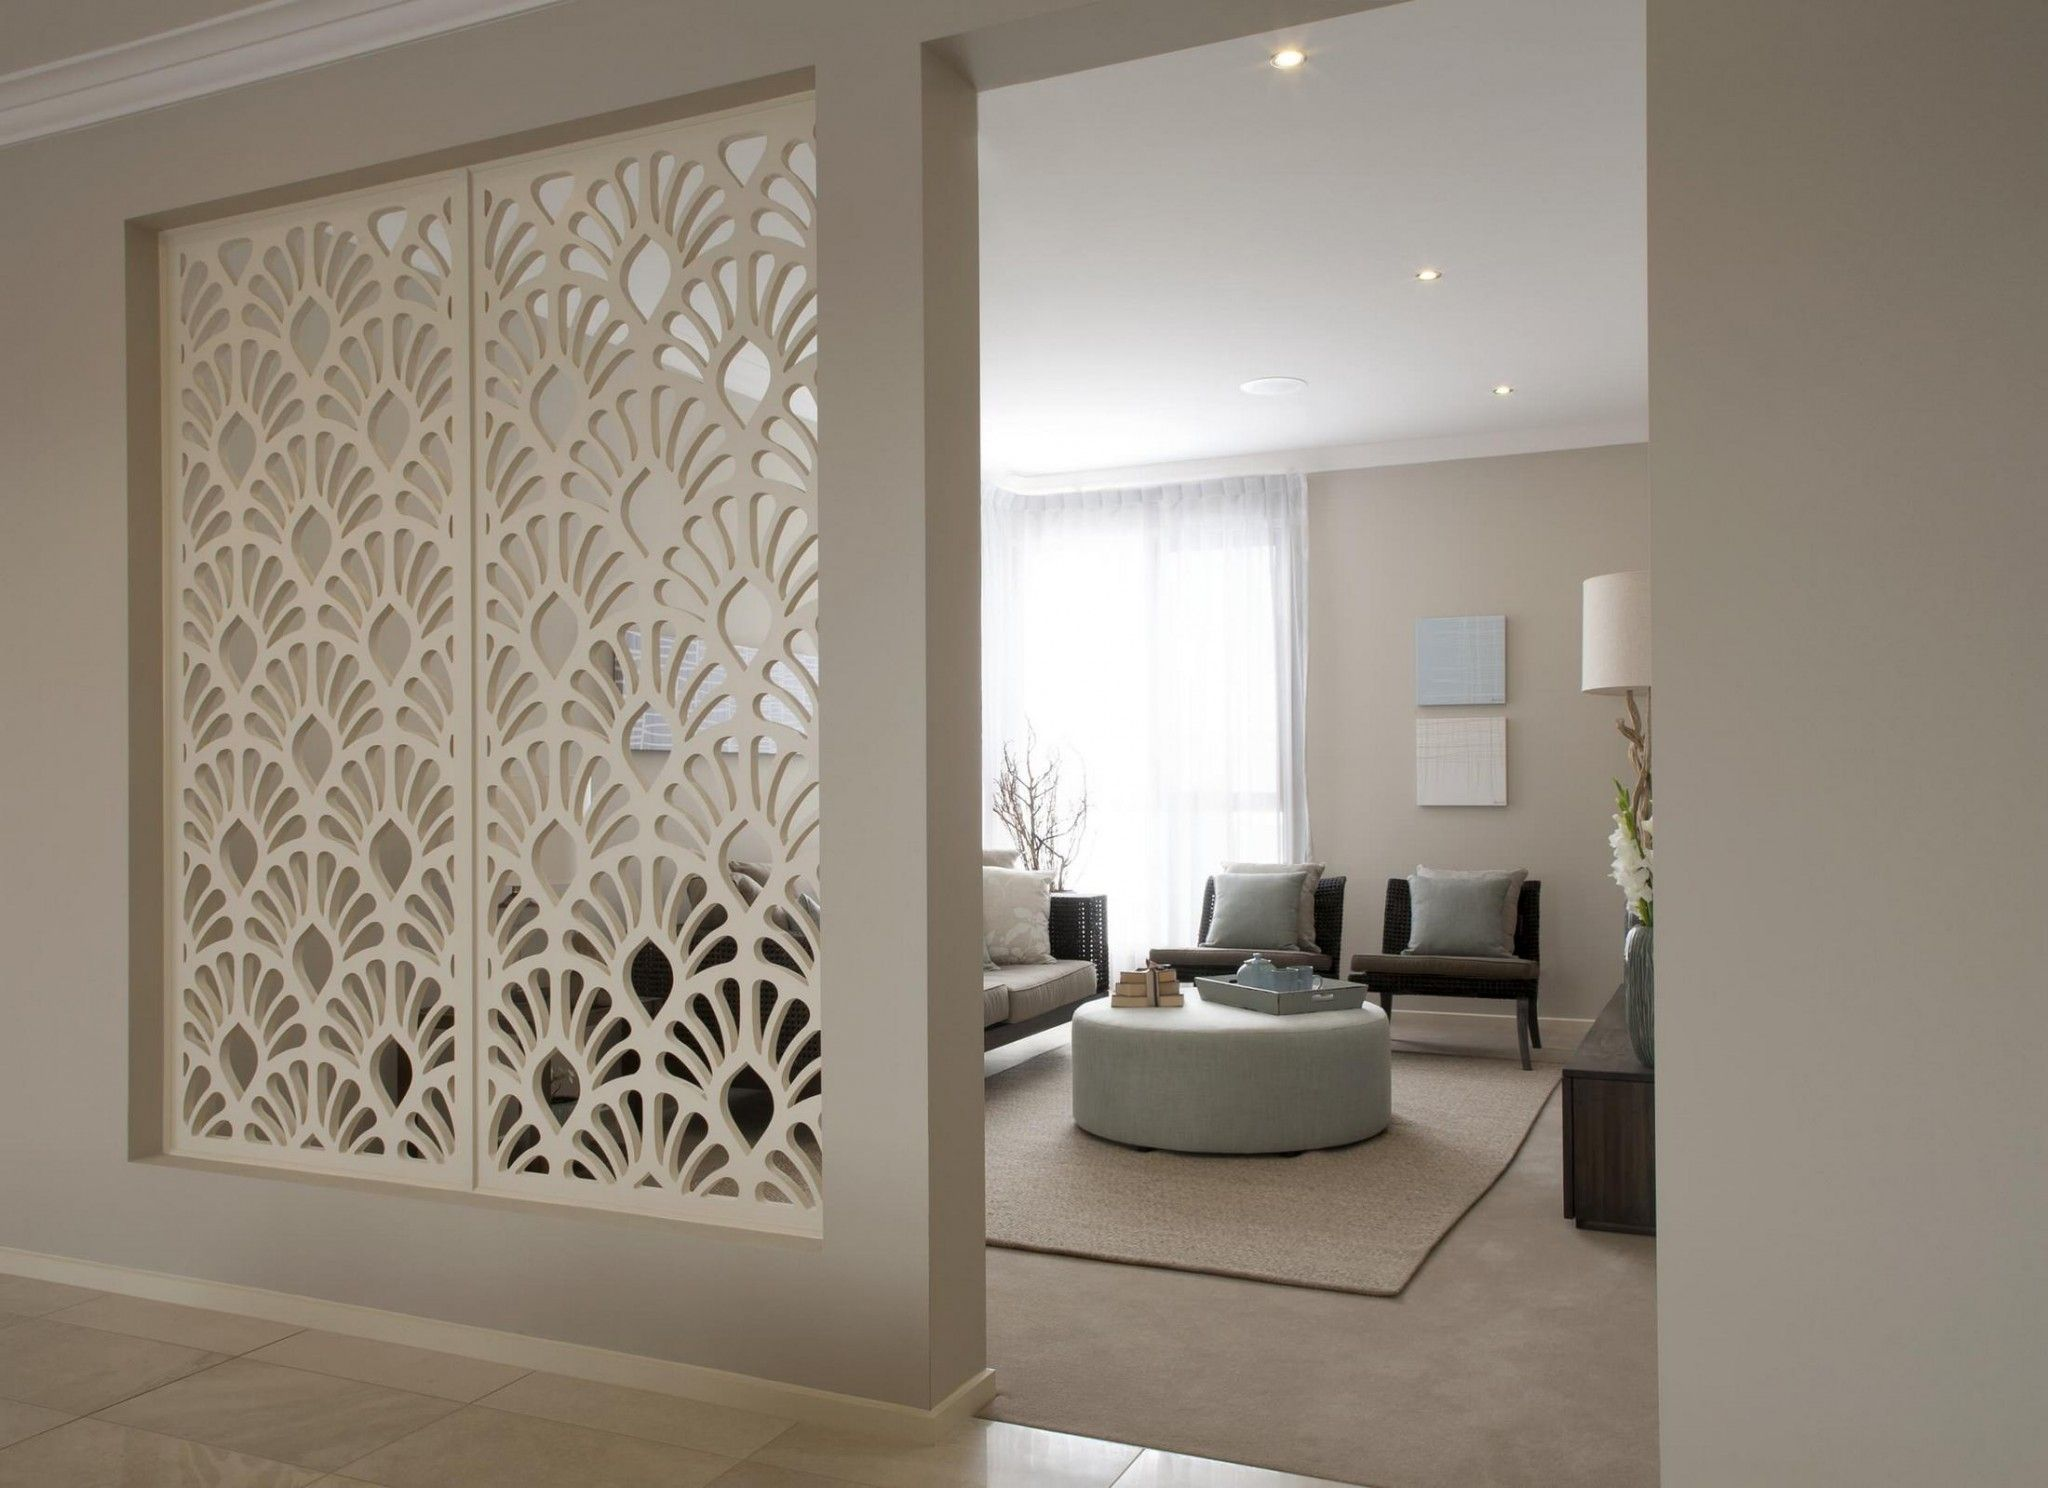 Charmant We Hope That The Interesting Interior Partitions Room Zoning Design Ideas,  Practical And Functional Variants Of Interior Partitions Will Inspire You